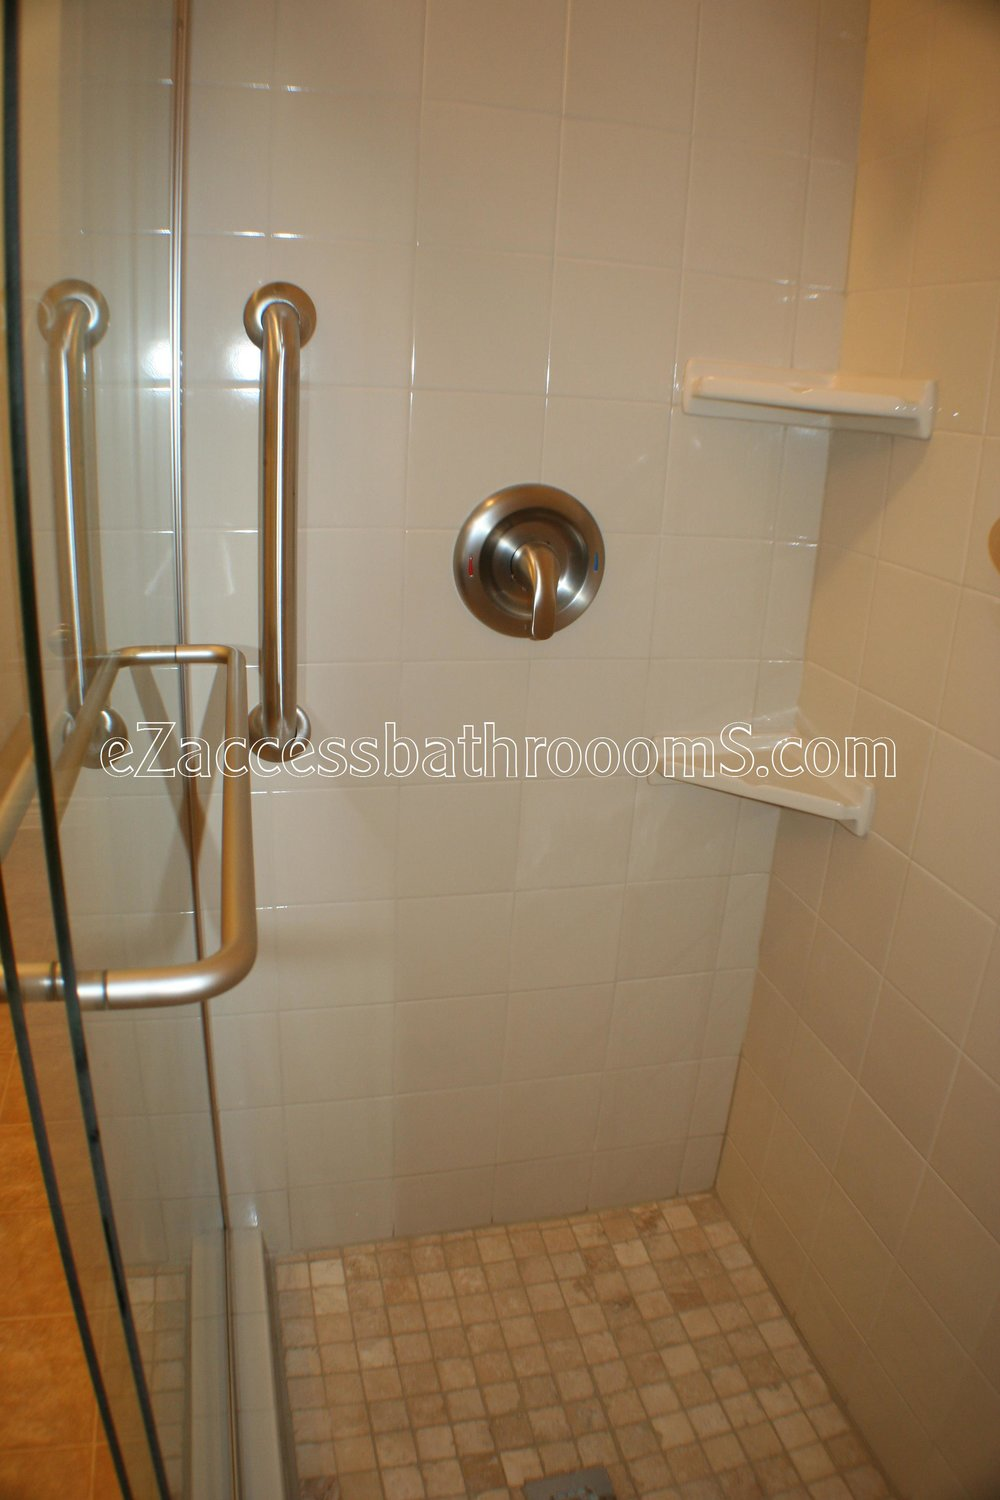 TUBTOSHOWERS CONVERSIONS EZACCESSBATHROOMS.COM 832202843 BRYANT 139.JPG